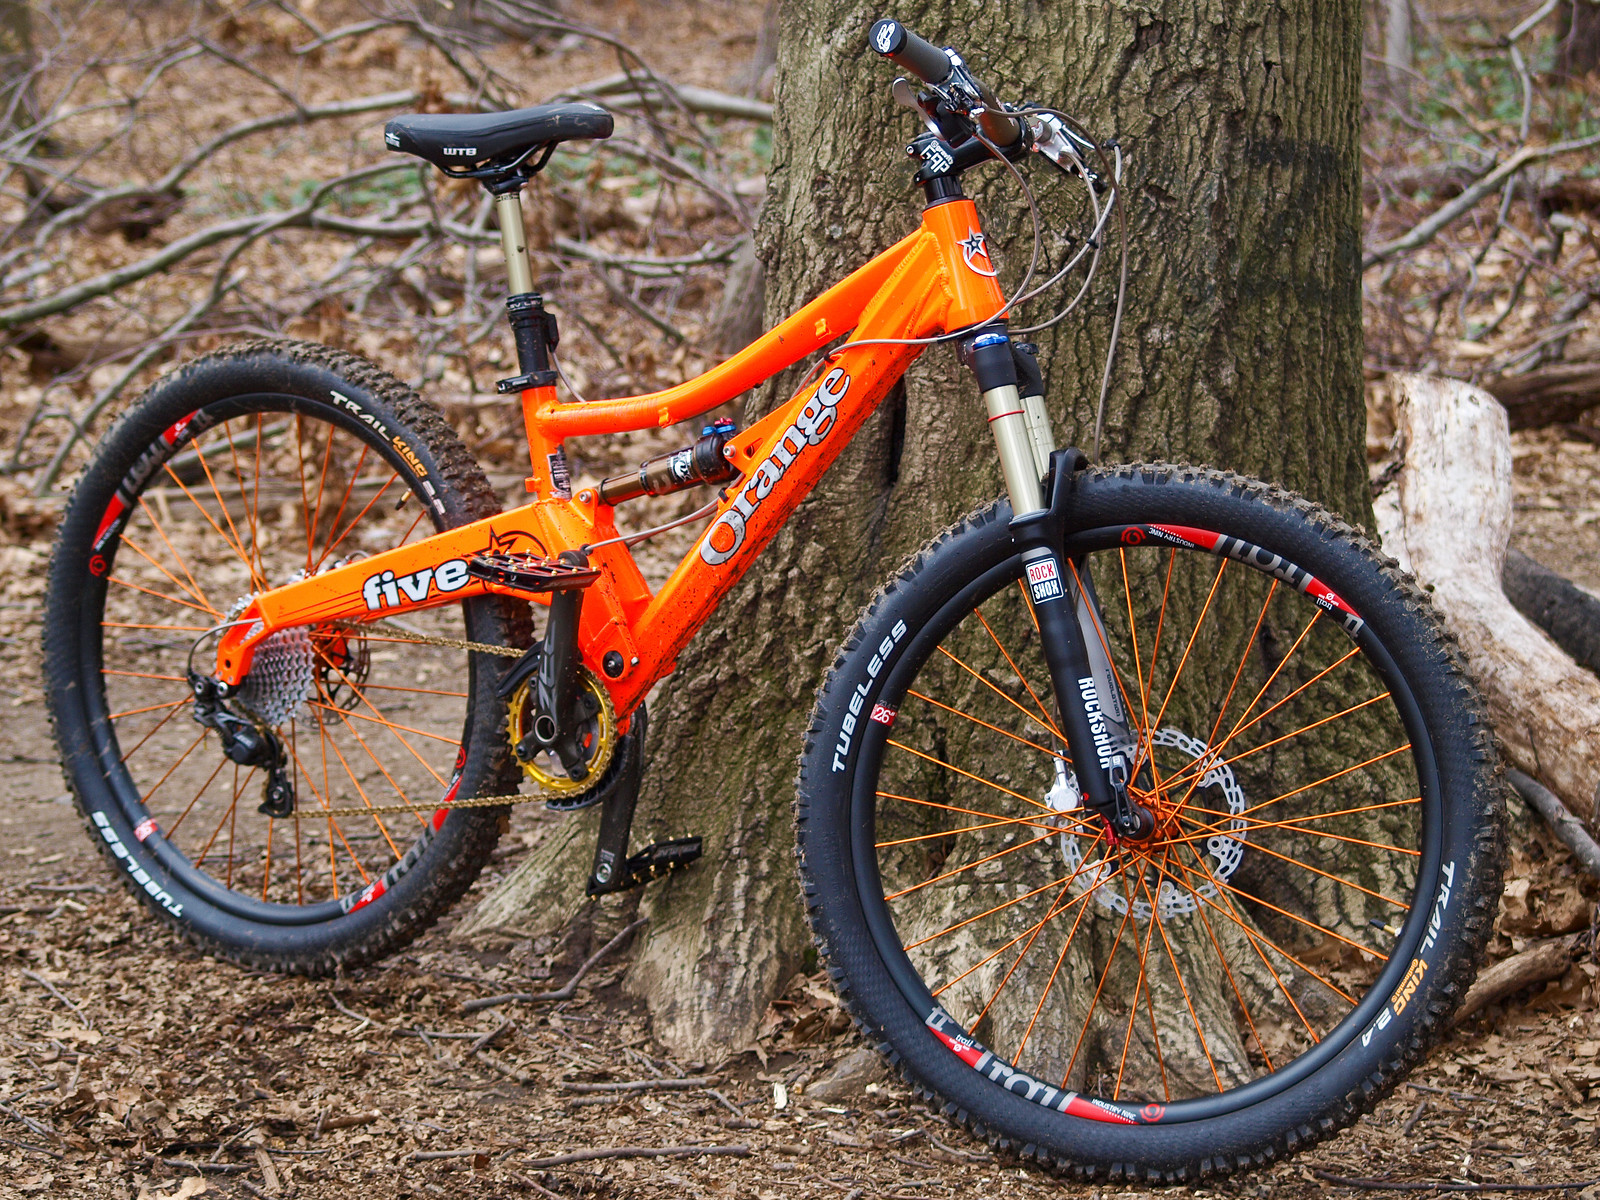 Neo2 - Depechetraff - Mountain Biking Pictures - Vital MTB